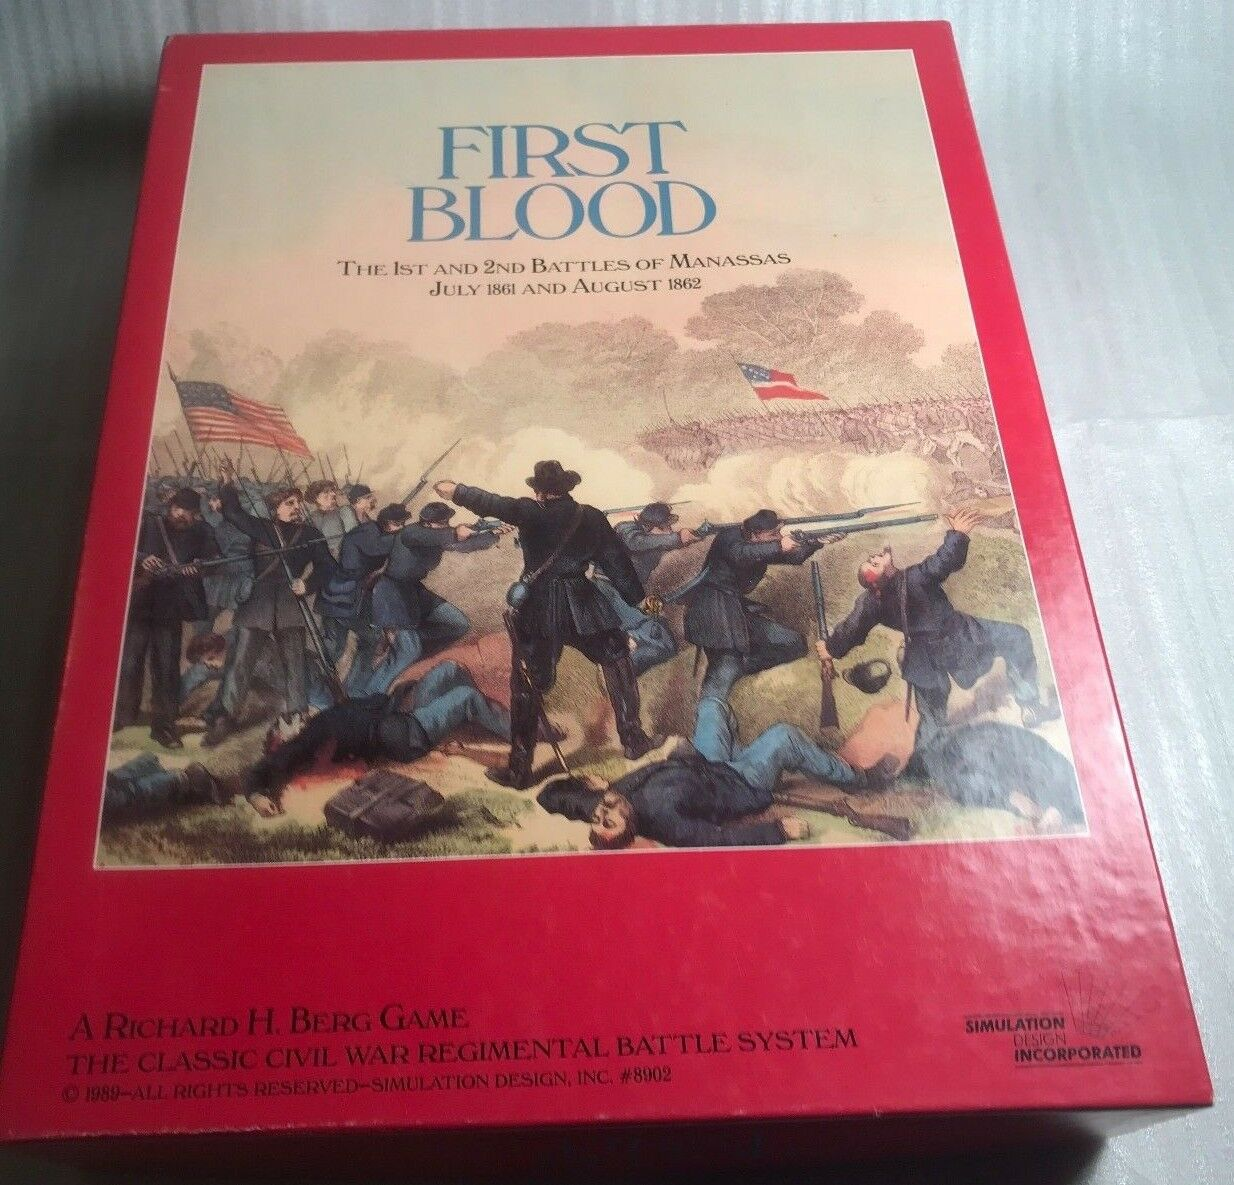 First Blood  The 1st and 2nd Battles of Manassas July 1861 and August 1862